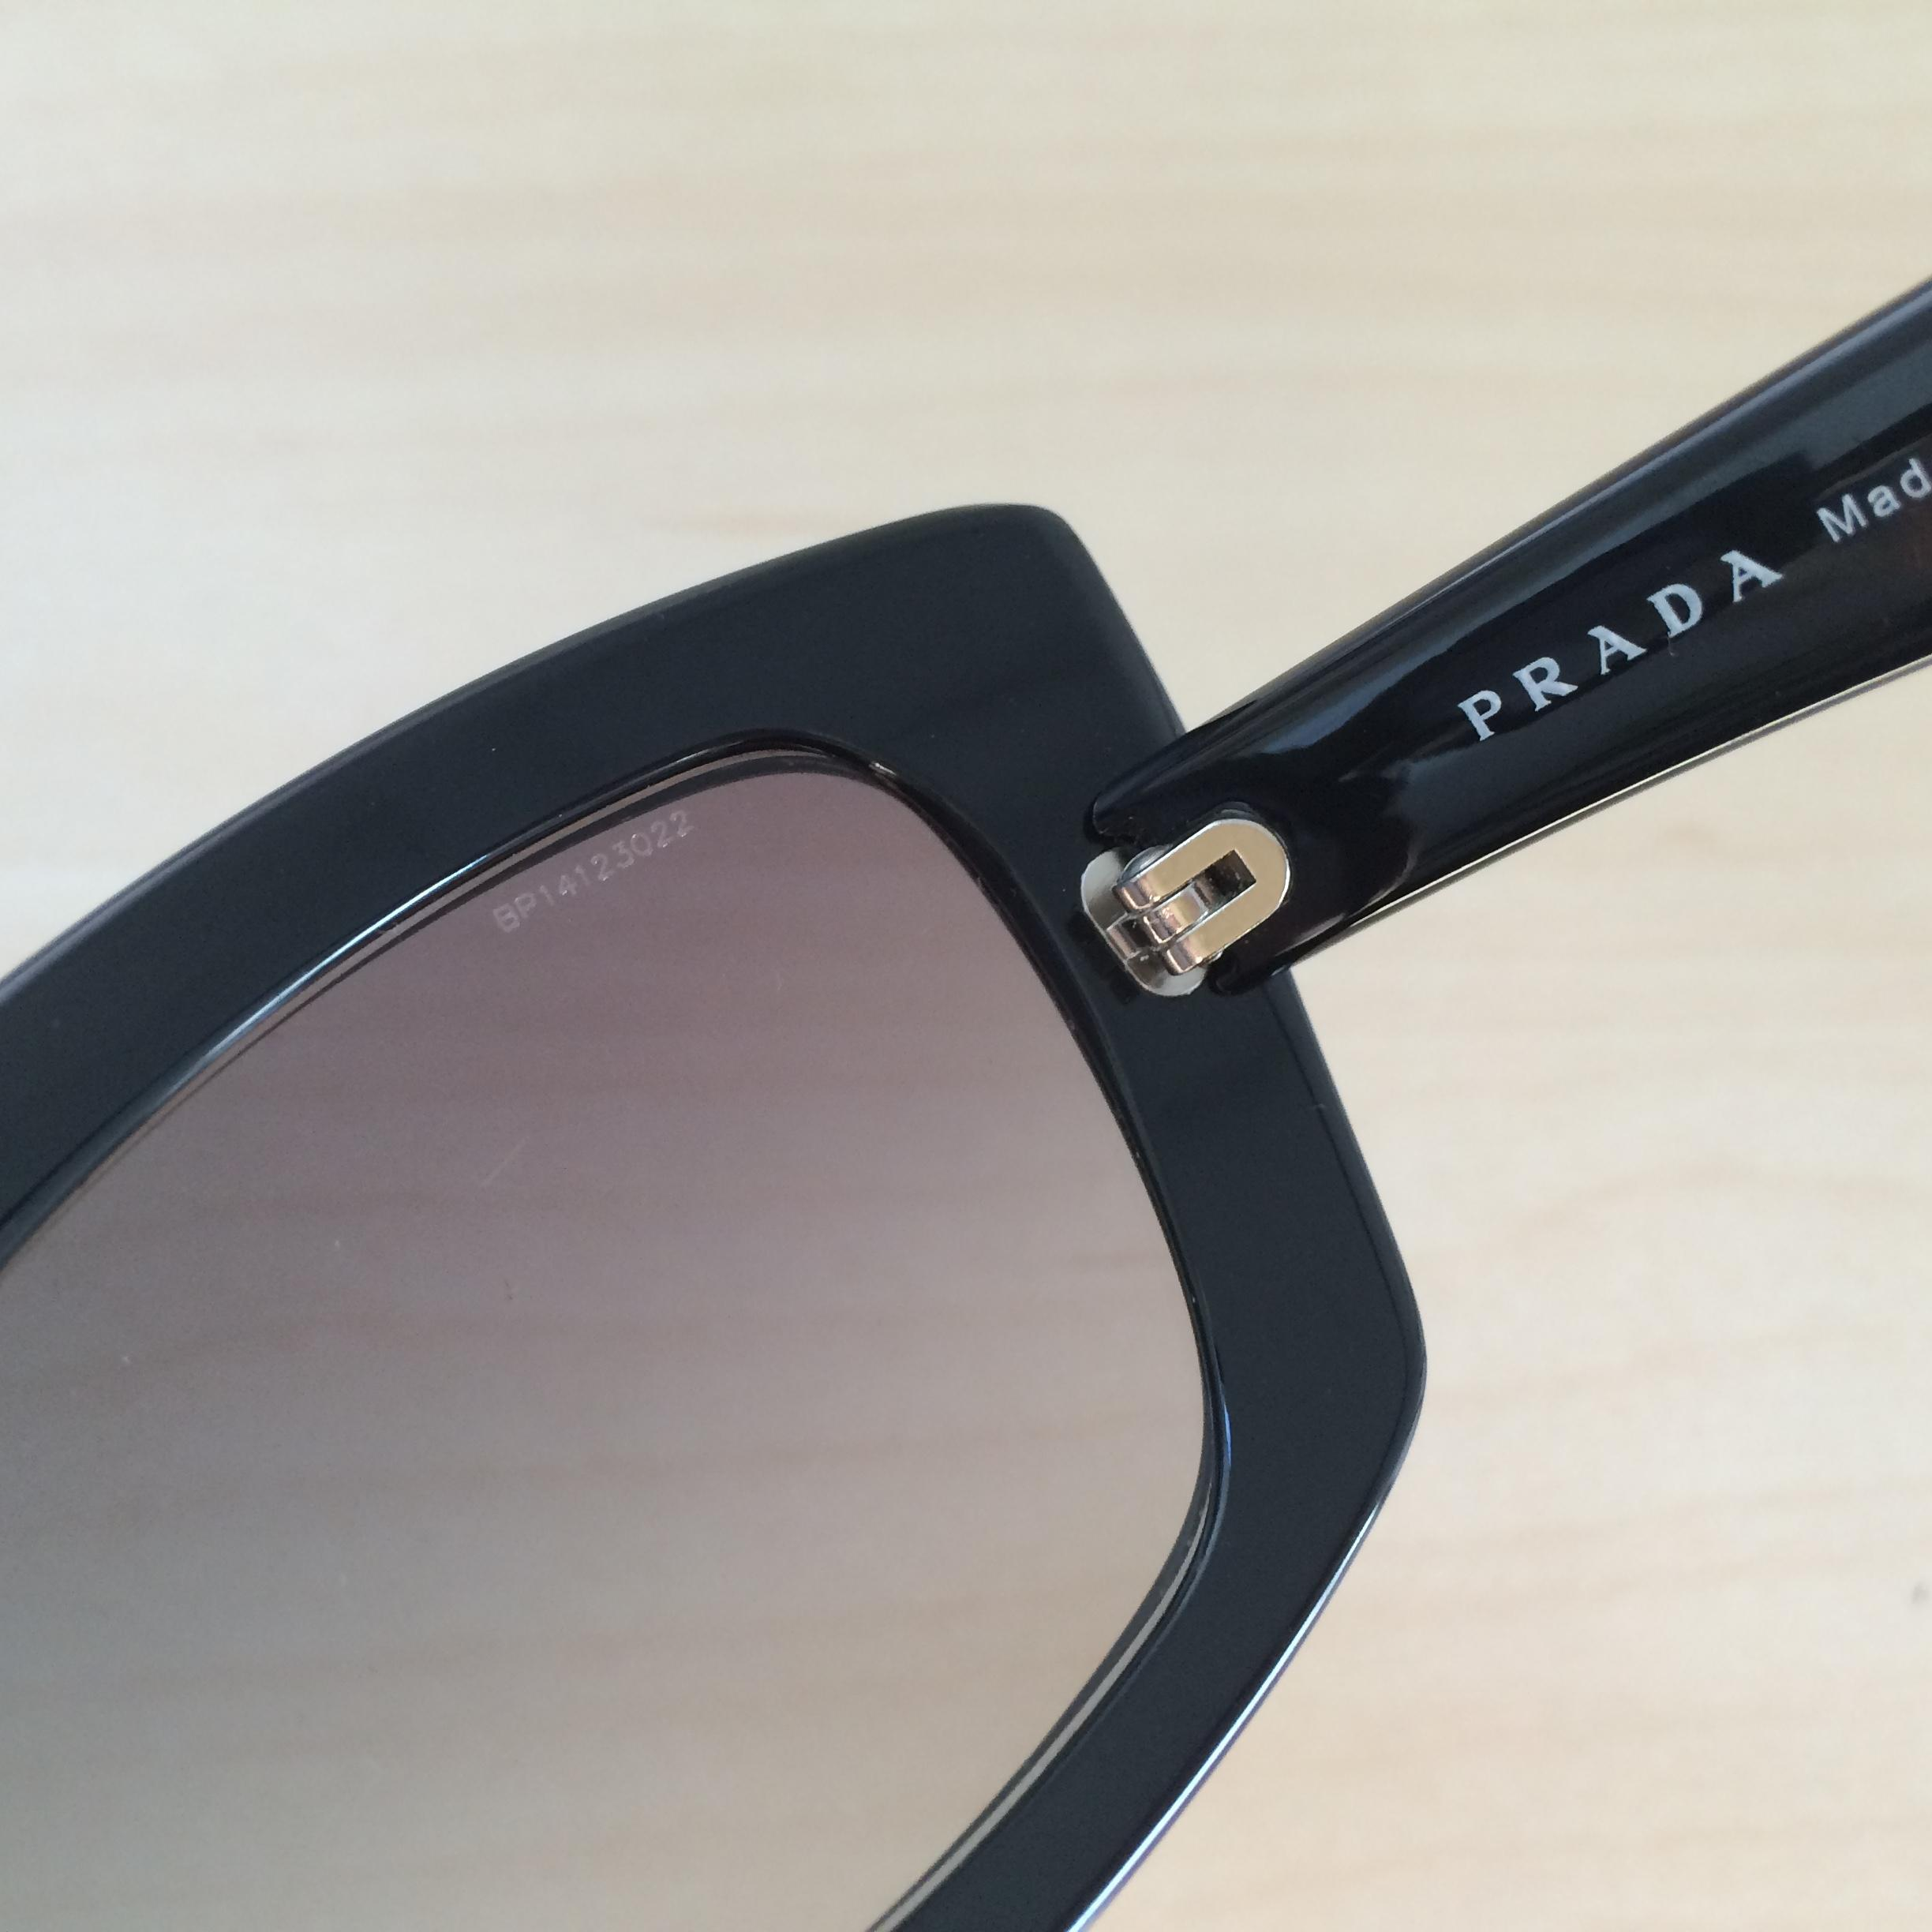 9848be7754e ... ireland prada prada cat eye spr 19m sunglasses black w violet gradient  lens. 12345678 d7cd7